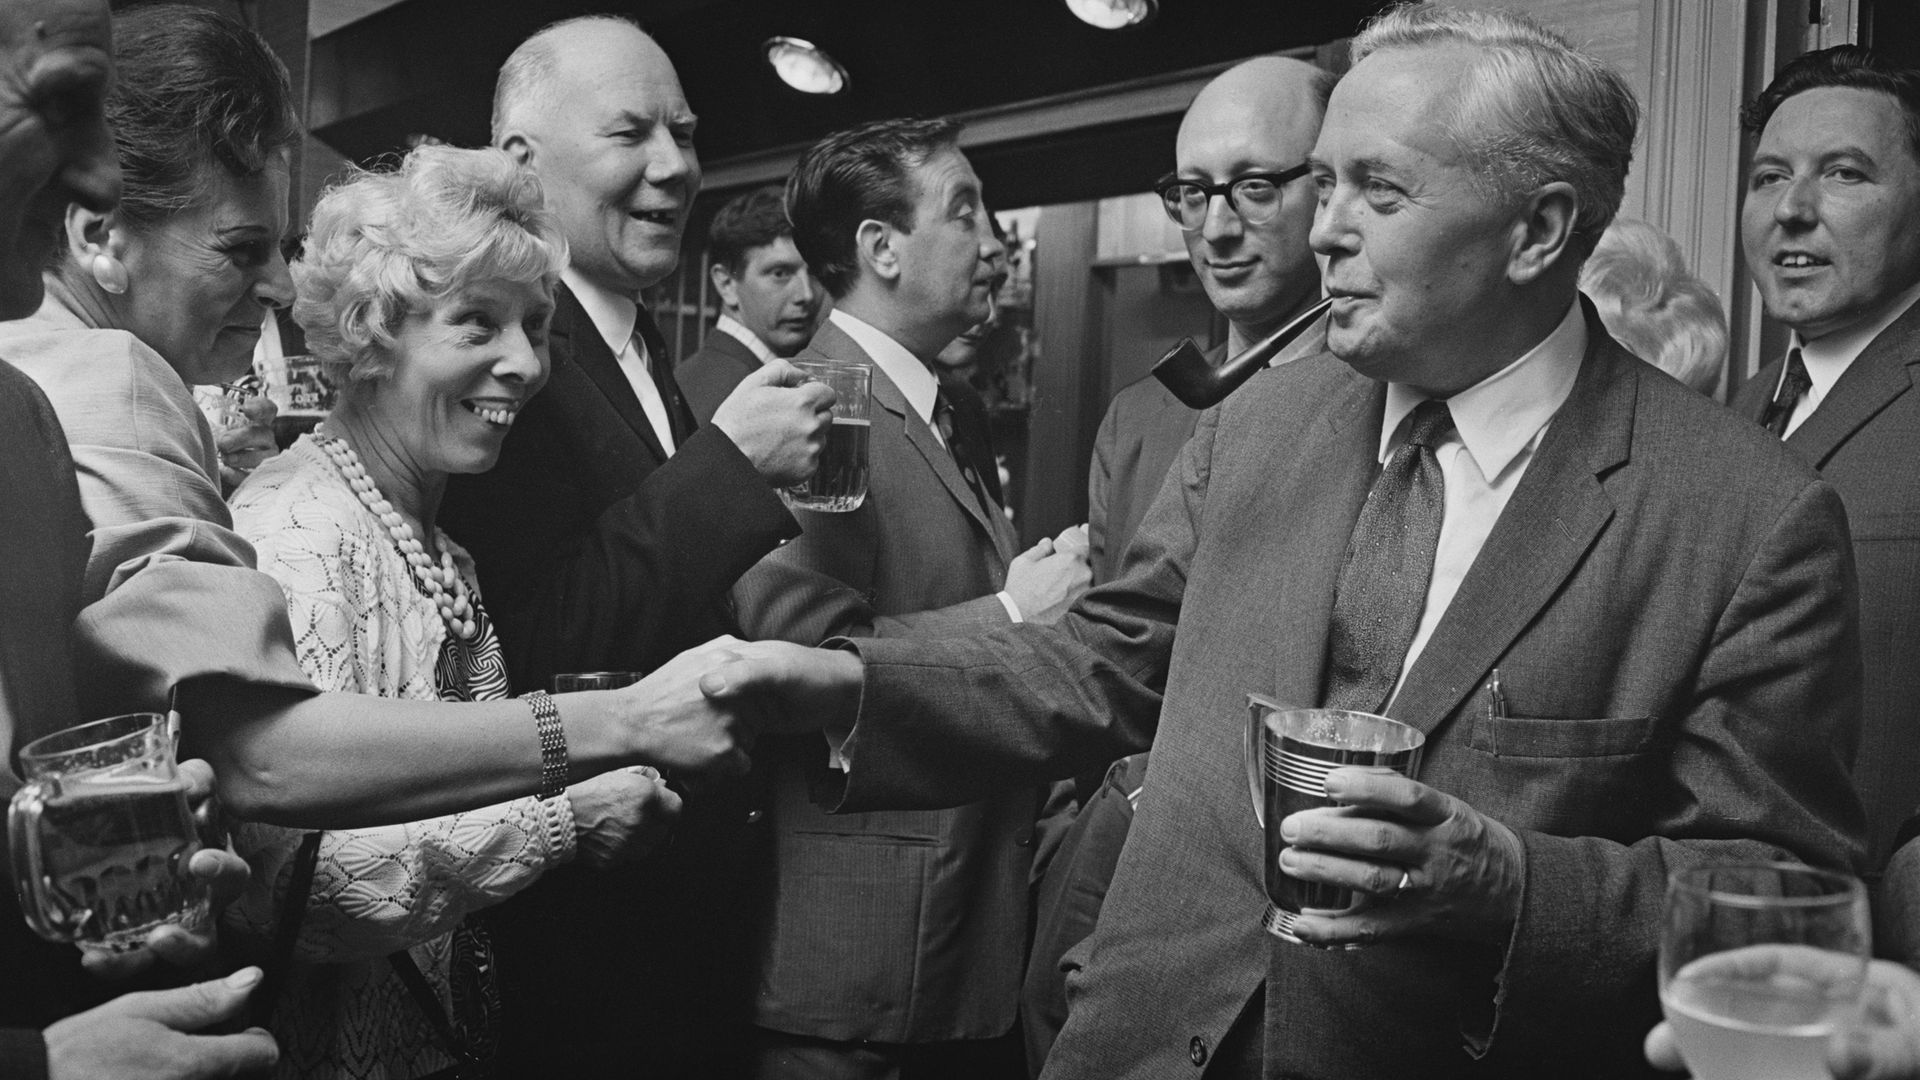 Harold Wilson opening the Bermondsey Labour Club, London, 1967 - Credit: Getty Images